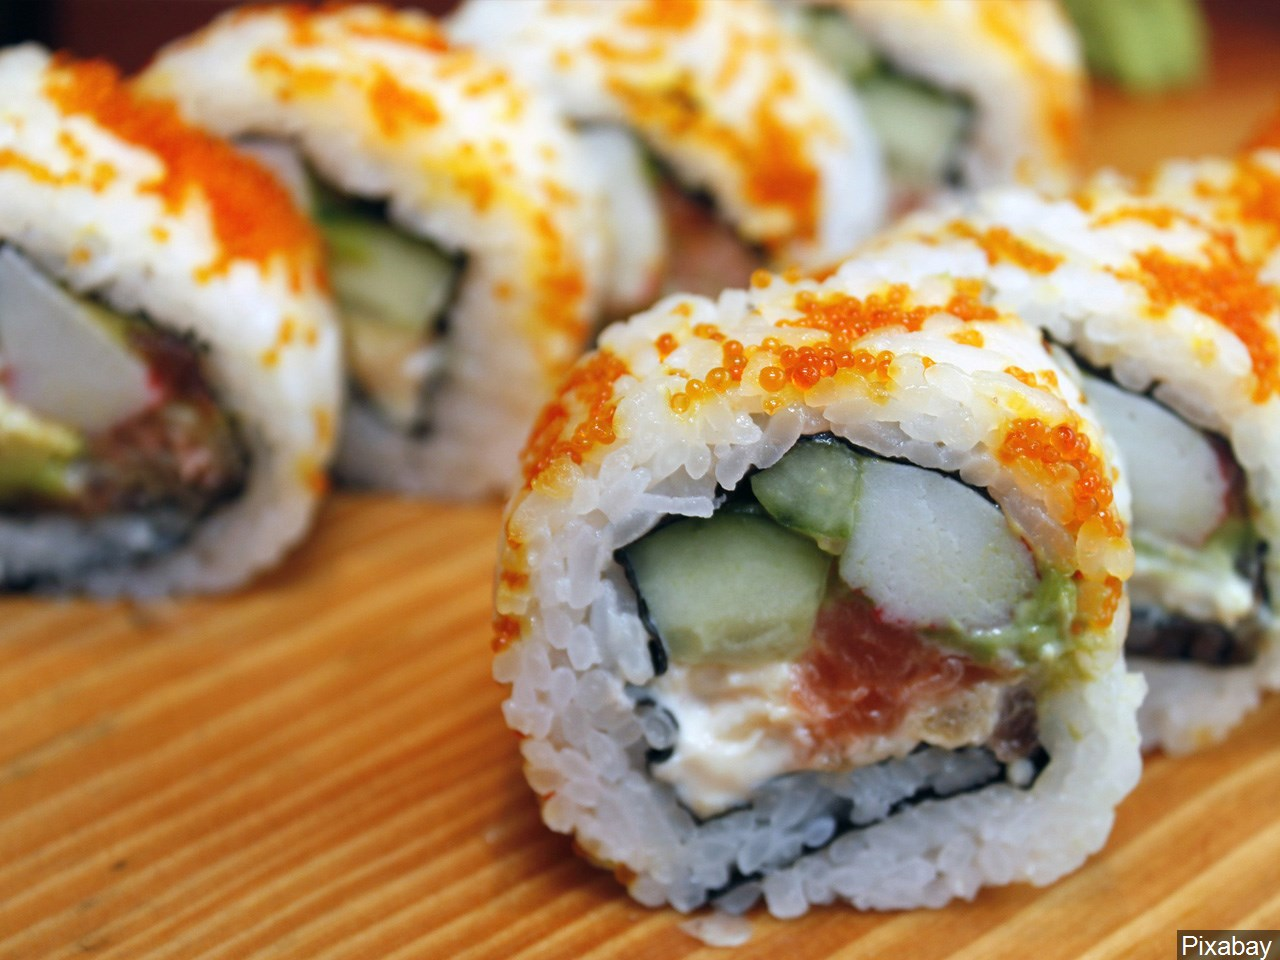 Fuji Food Products, Inc. issued a voluntary recall for some of its sushi products, due to potential contamination with sell-by date ranging from 11/20 - 12/6.